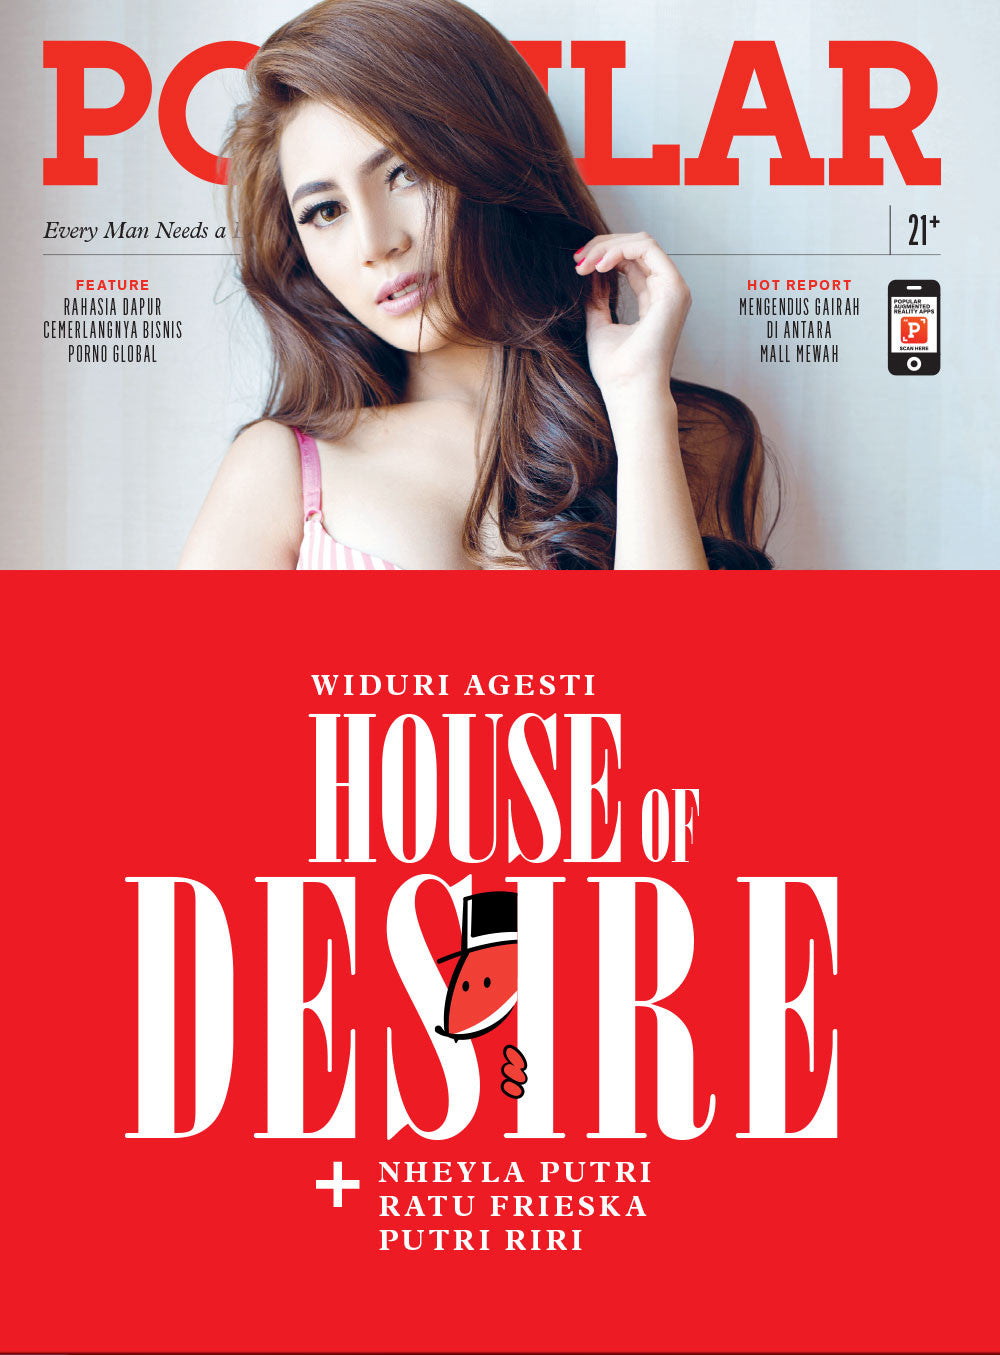 Majalah POPULAR Indonesia | House of Desire | September 2015 Edition